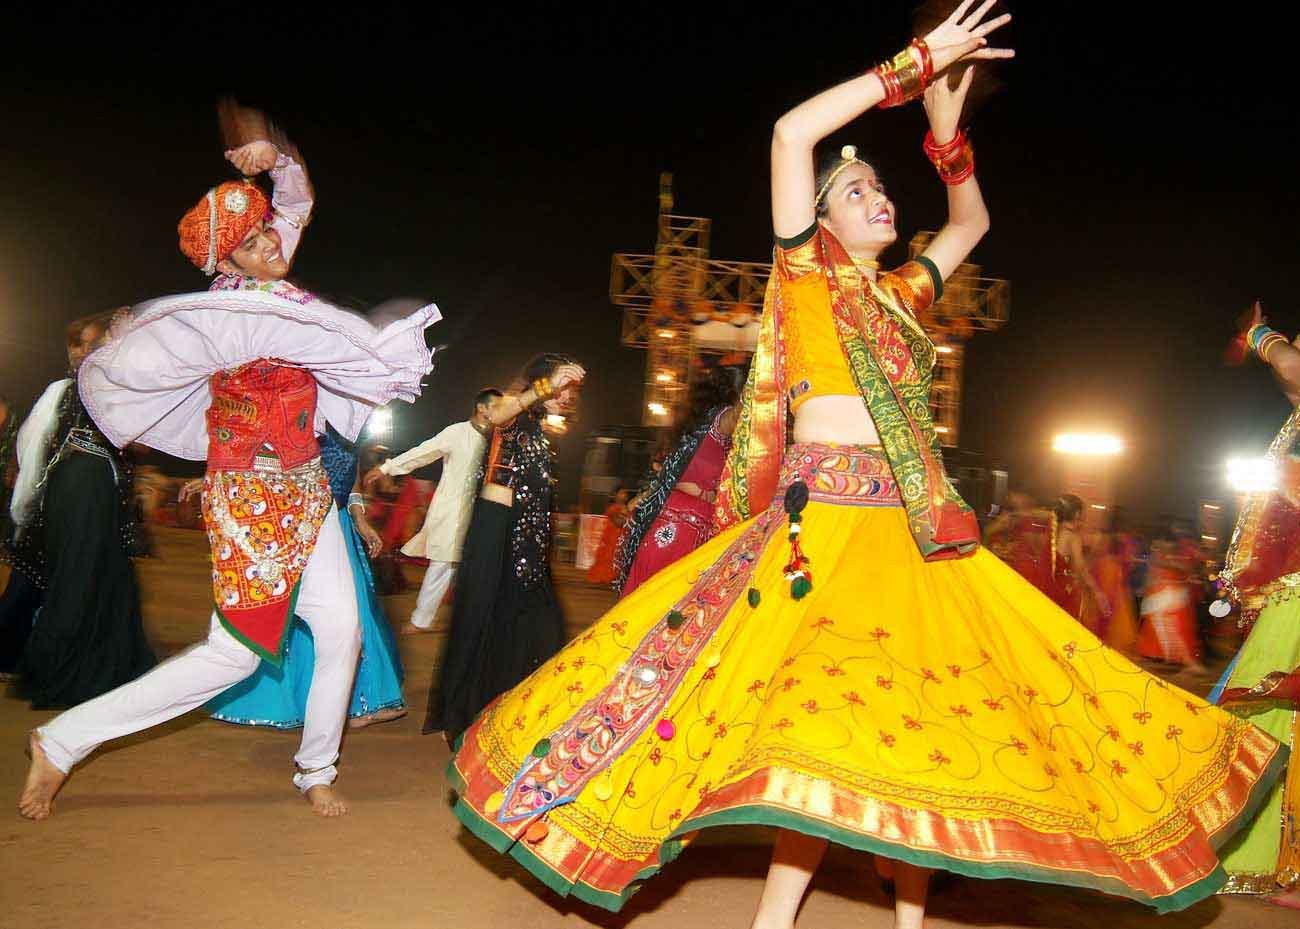 Bhil Lady Dancing during a Bhil Community Festival